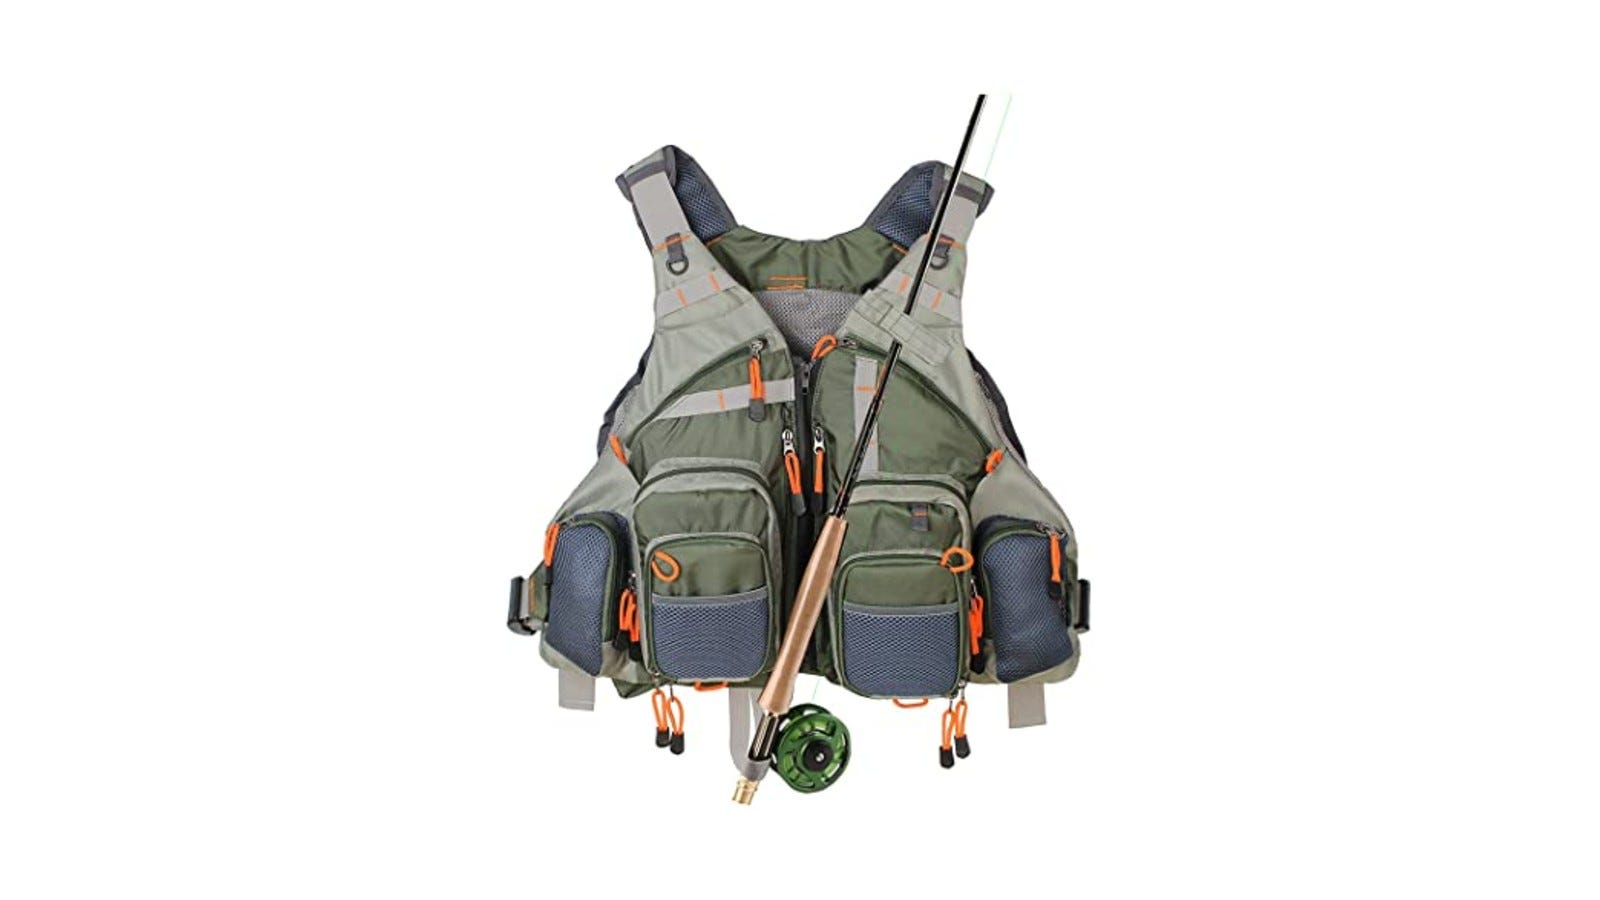 a fishing life vest with lots of zippered pockets and a fishing pole resting on top of it